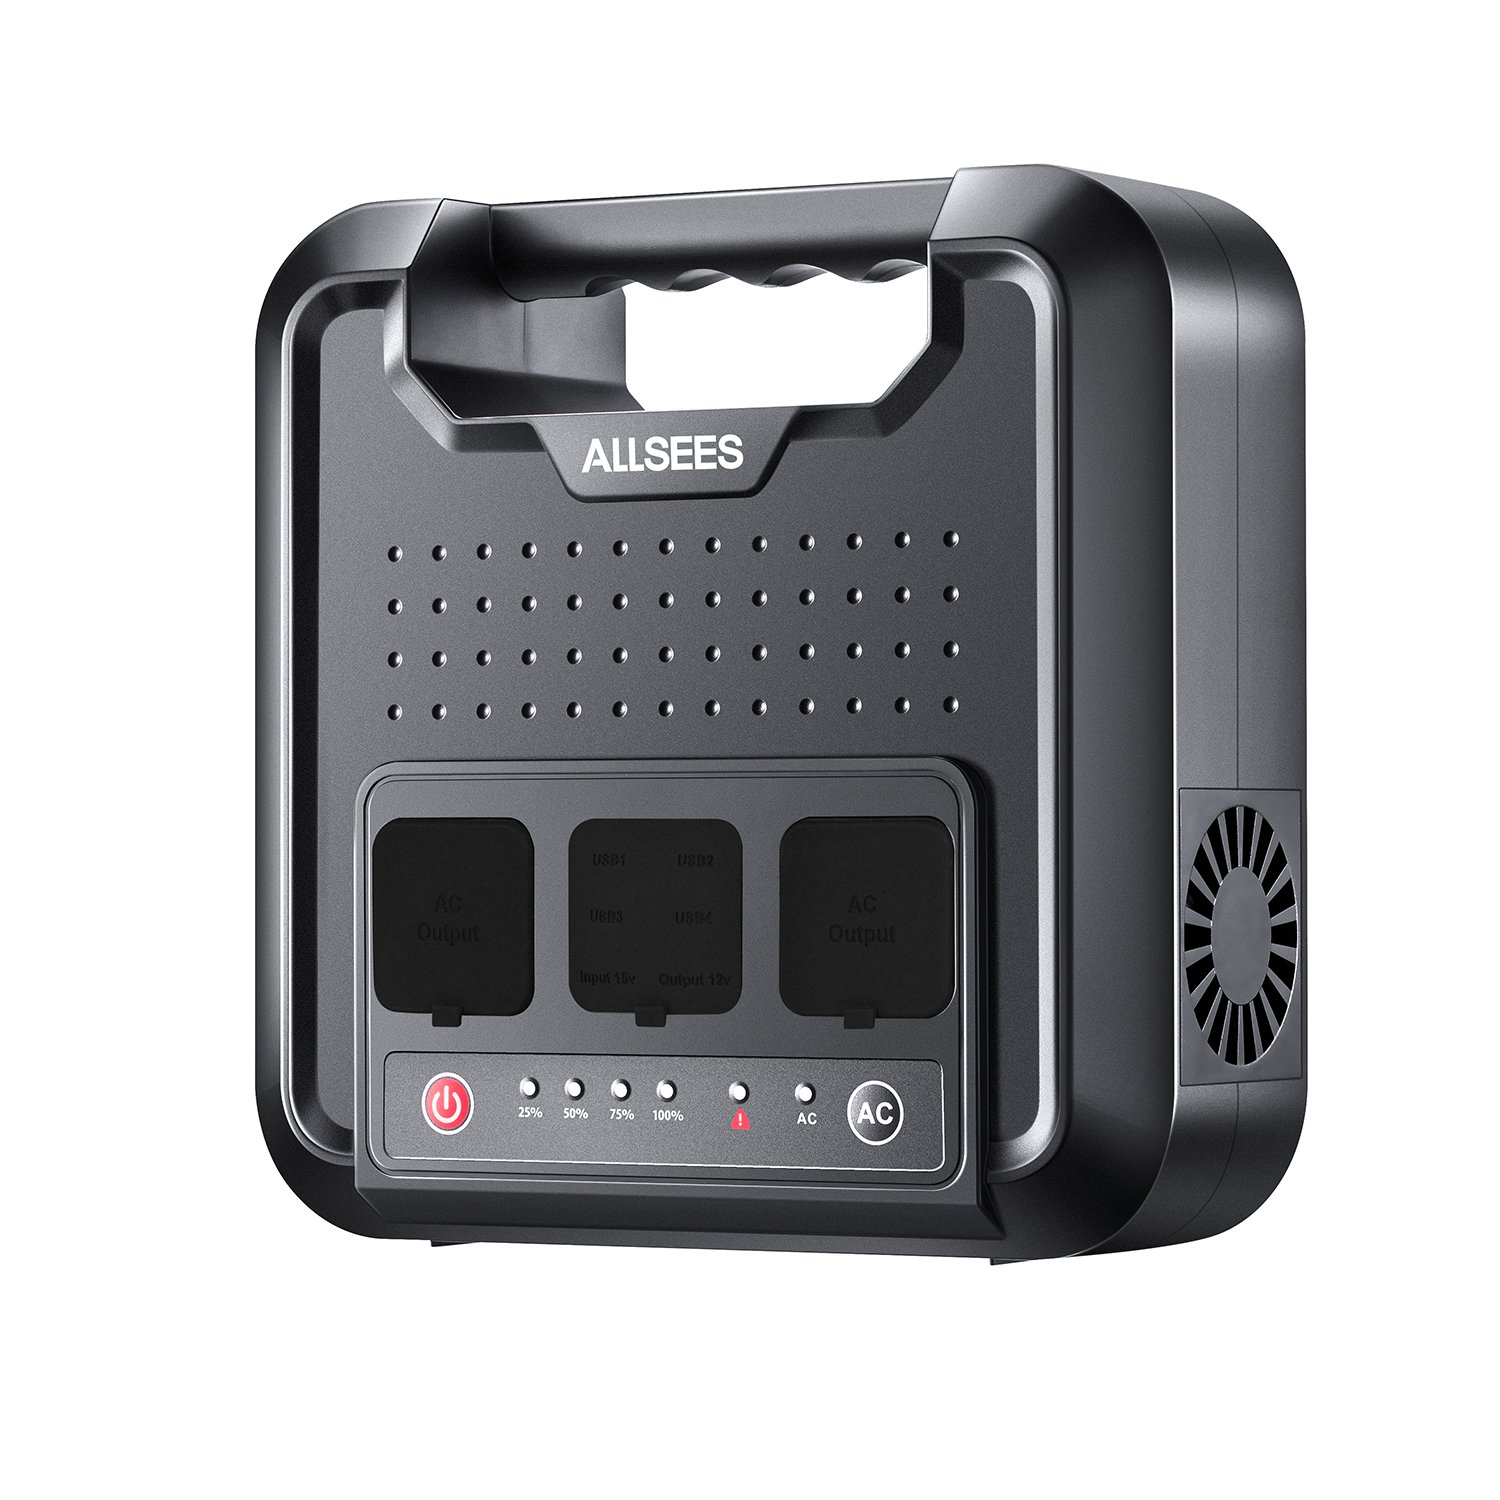 Power Station –300W 220Wh Portable Generator, Multifarious Rechargeable Power Source with DC/AC Inverter, Dual 110V AC Outlet, Dual DC Ports, 4 USB Ports for Outdoor Using, CPAP or Emergency Backup